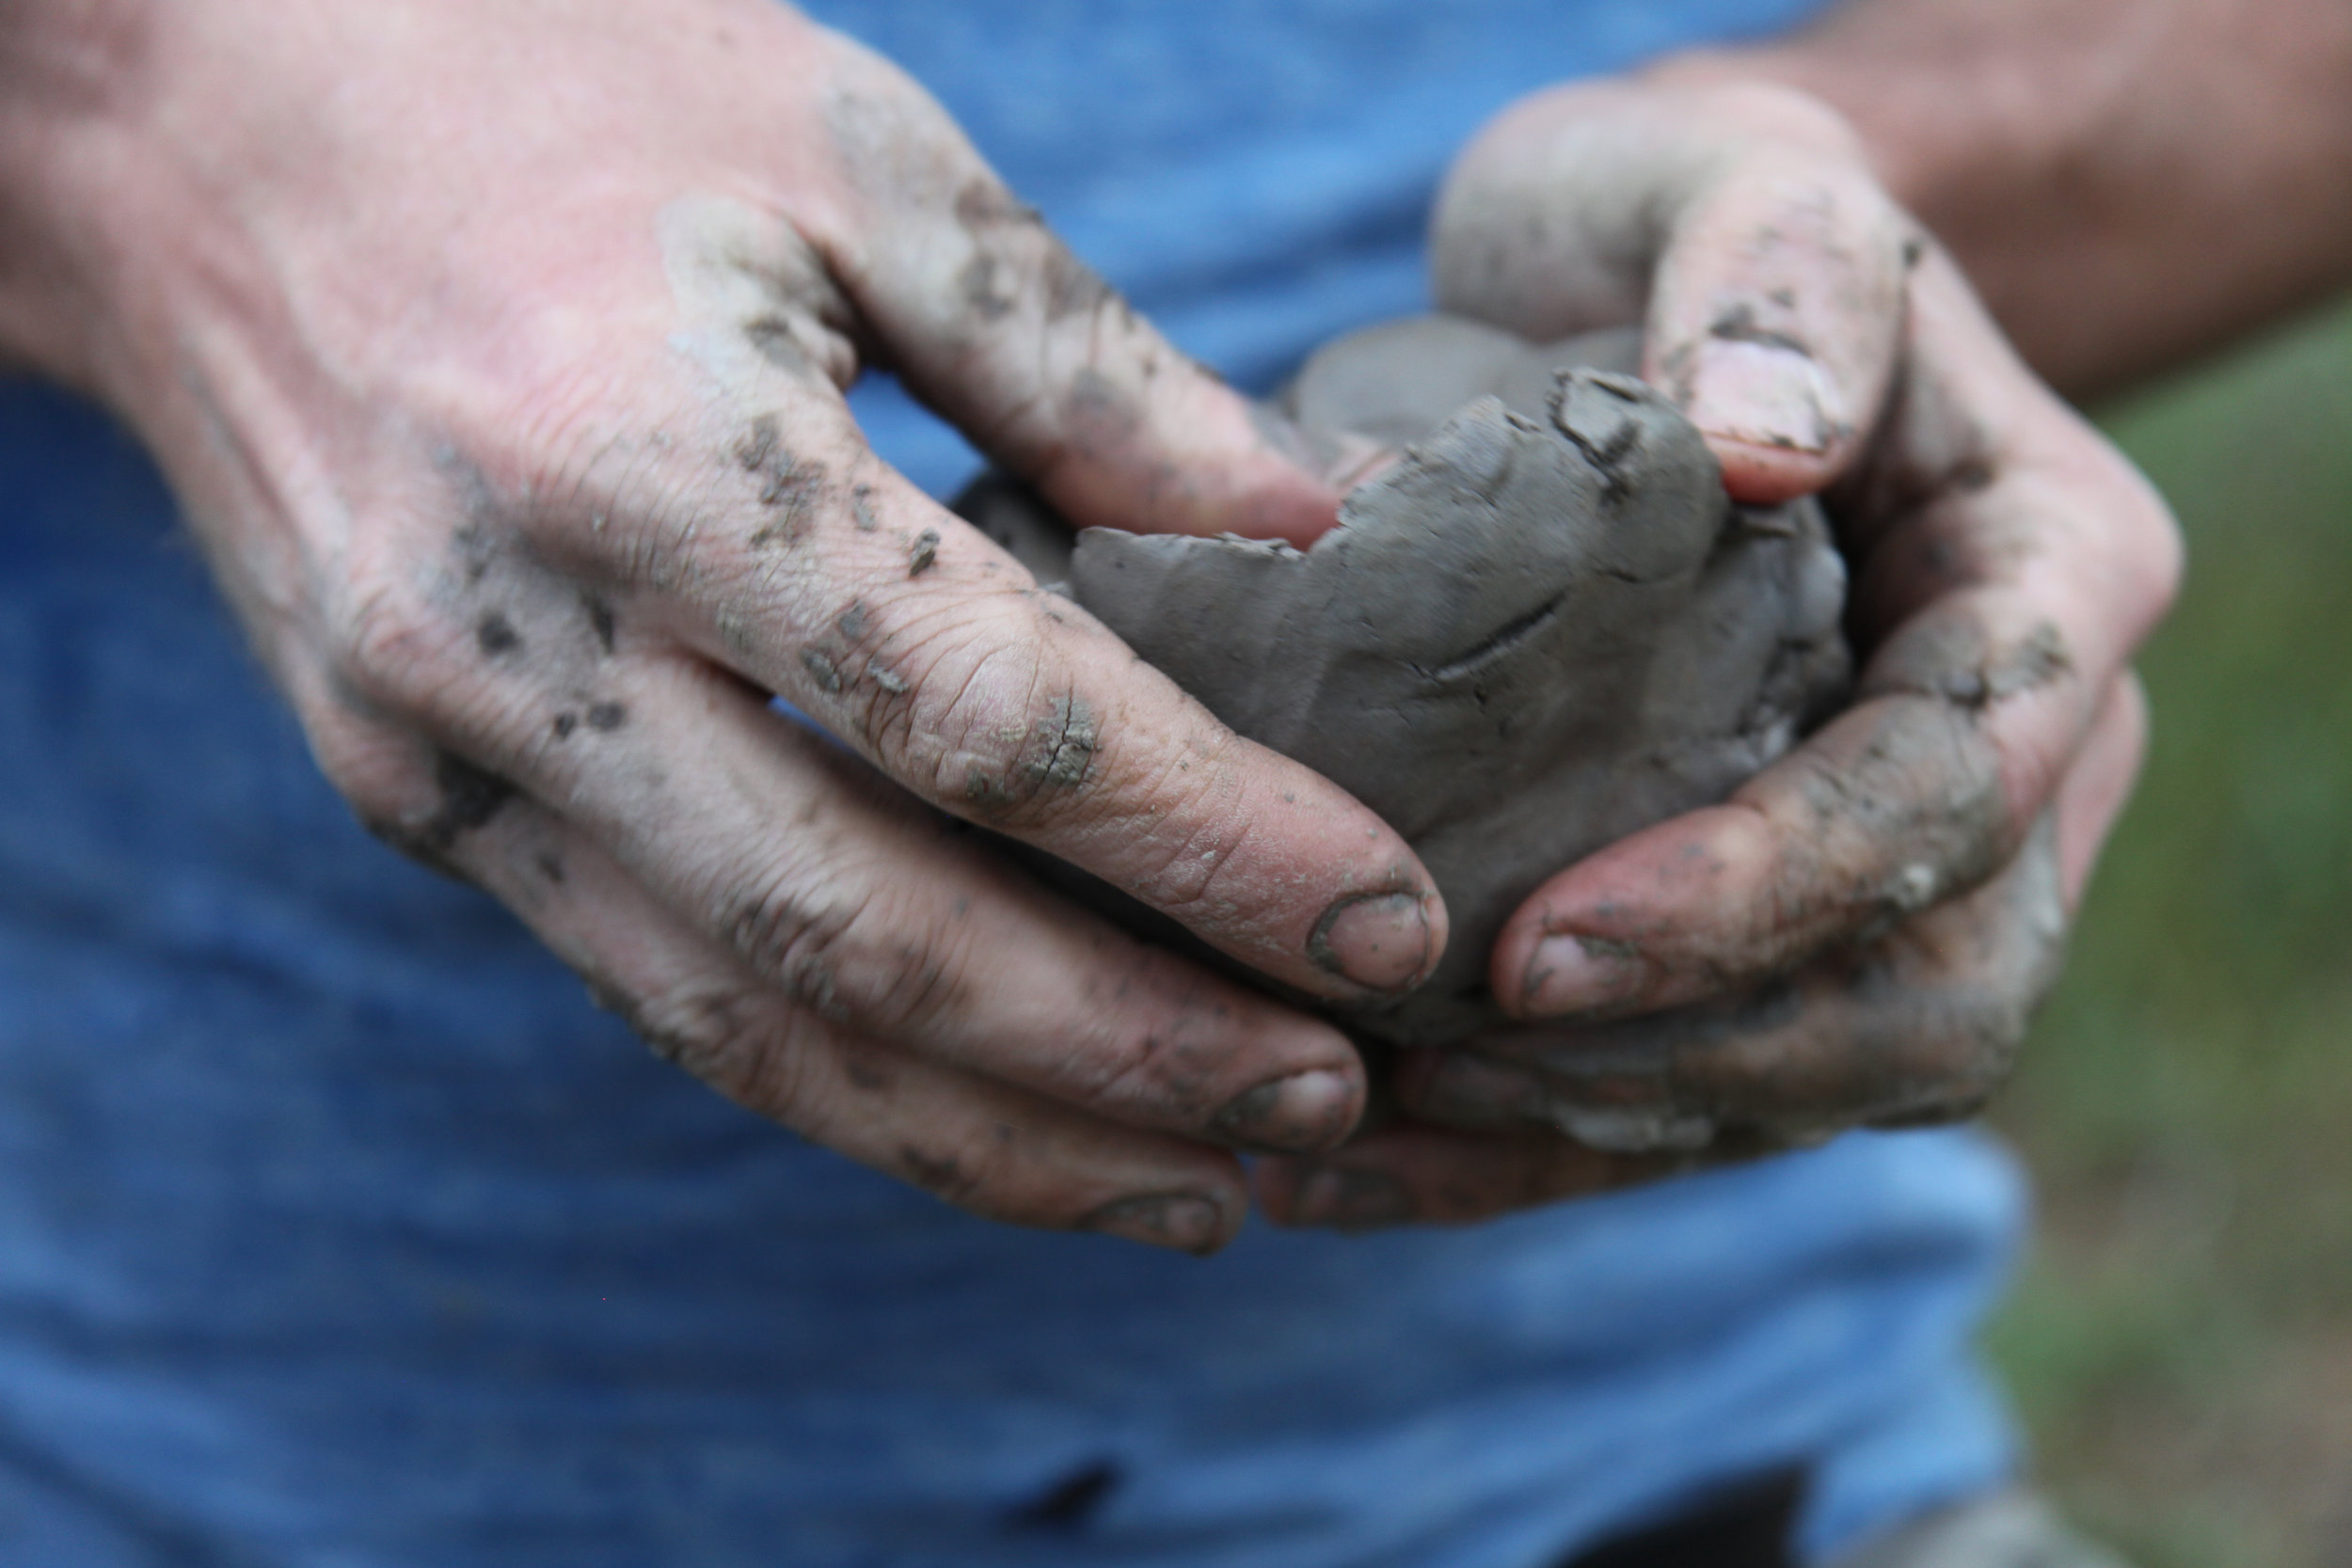 Josh Copus works the pure, wild clay he digs straight from the earth. (Photo by Andrew Evans)